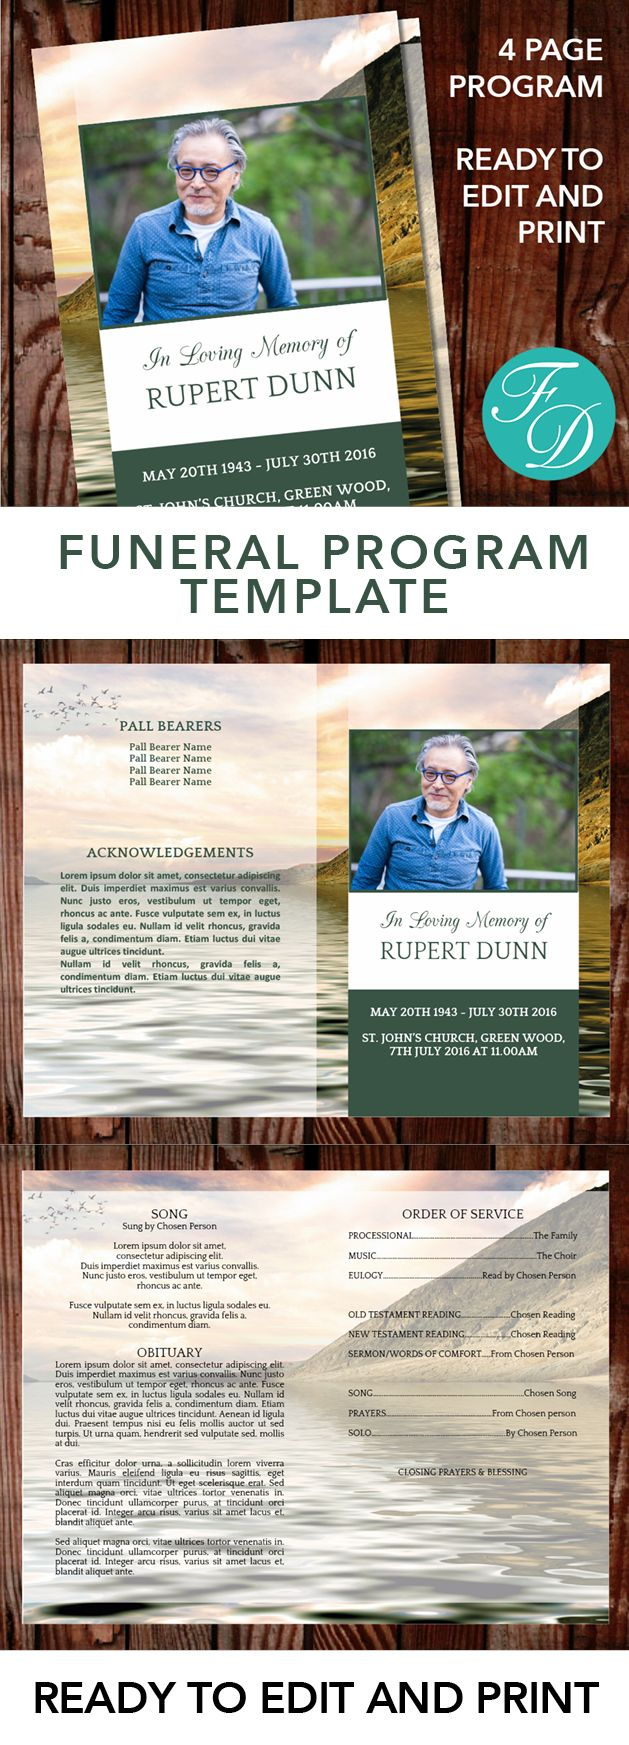 Lake Printable Funeral program ready to edit & print. Simply purchase your funeral templates, download, edit with Microsoft Word and print. #obituarytemplate #memorialprogram #funeralprograms #funeraltemplate #printableprogram #celebrationoflife